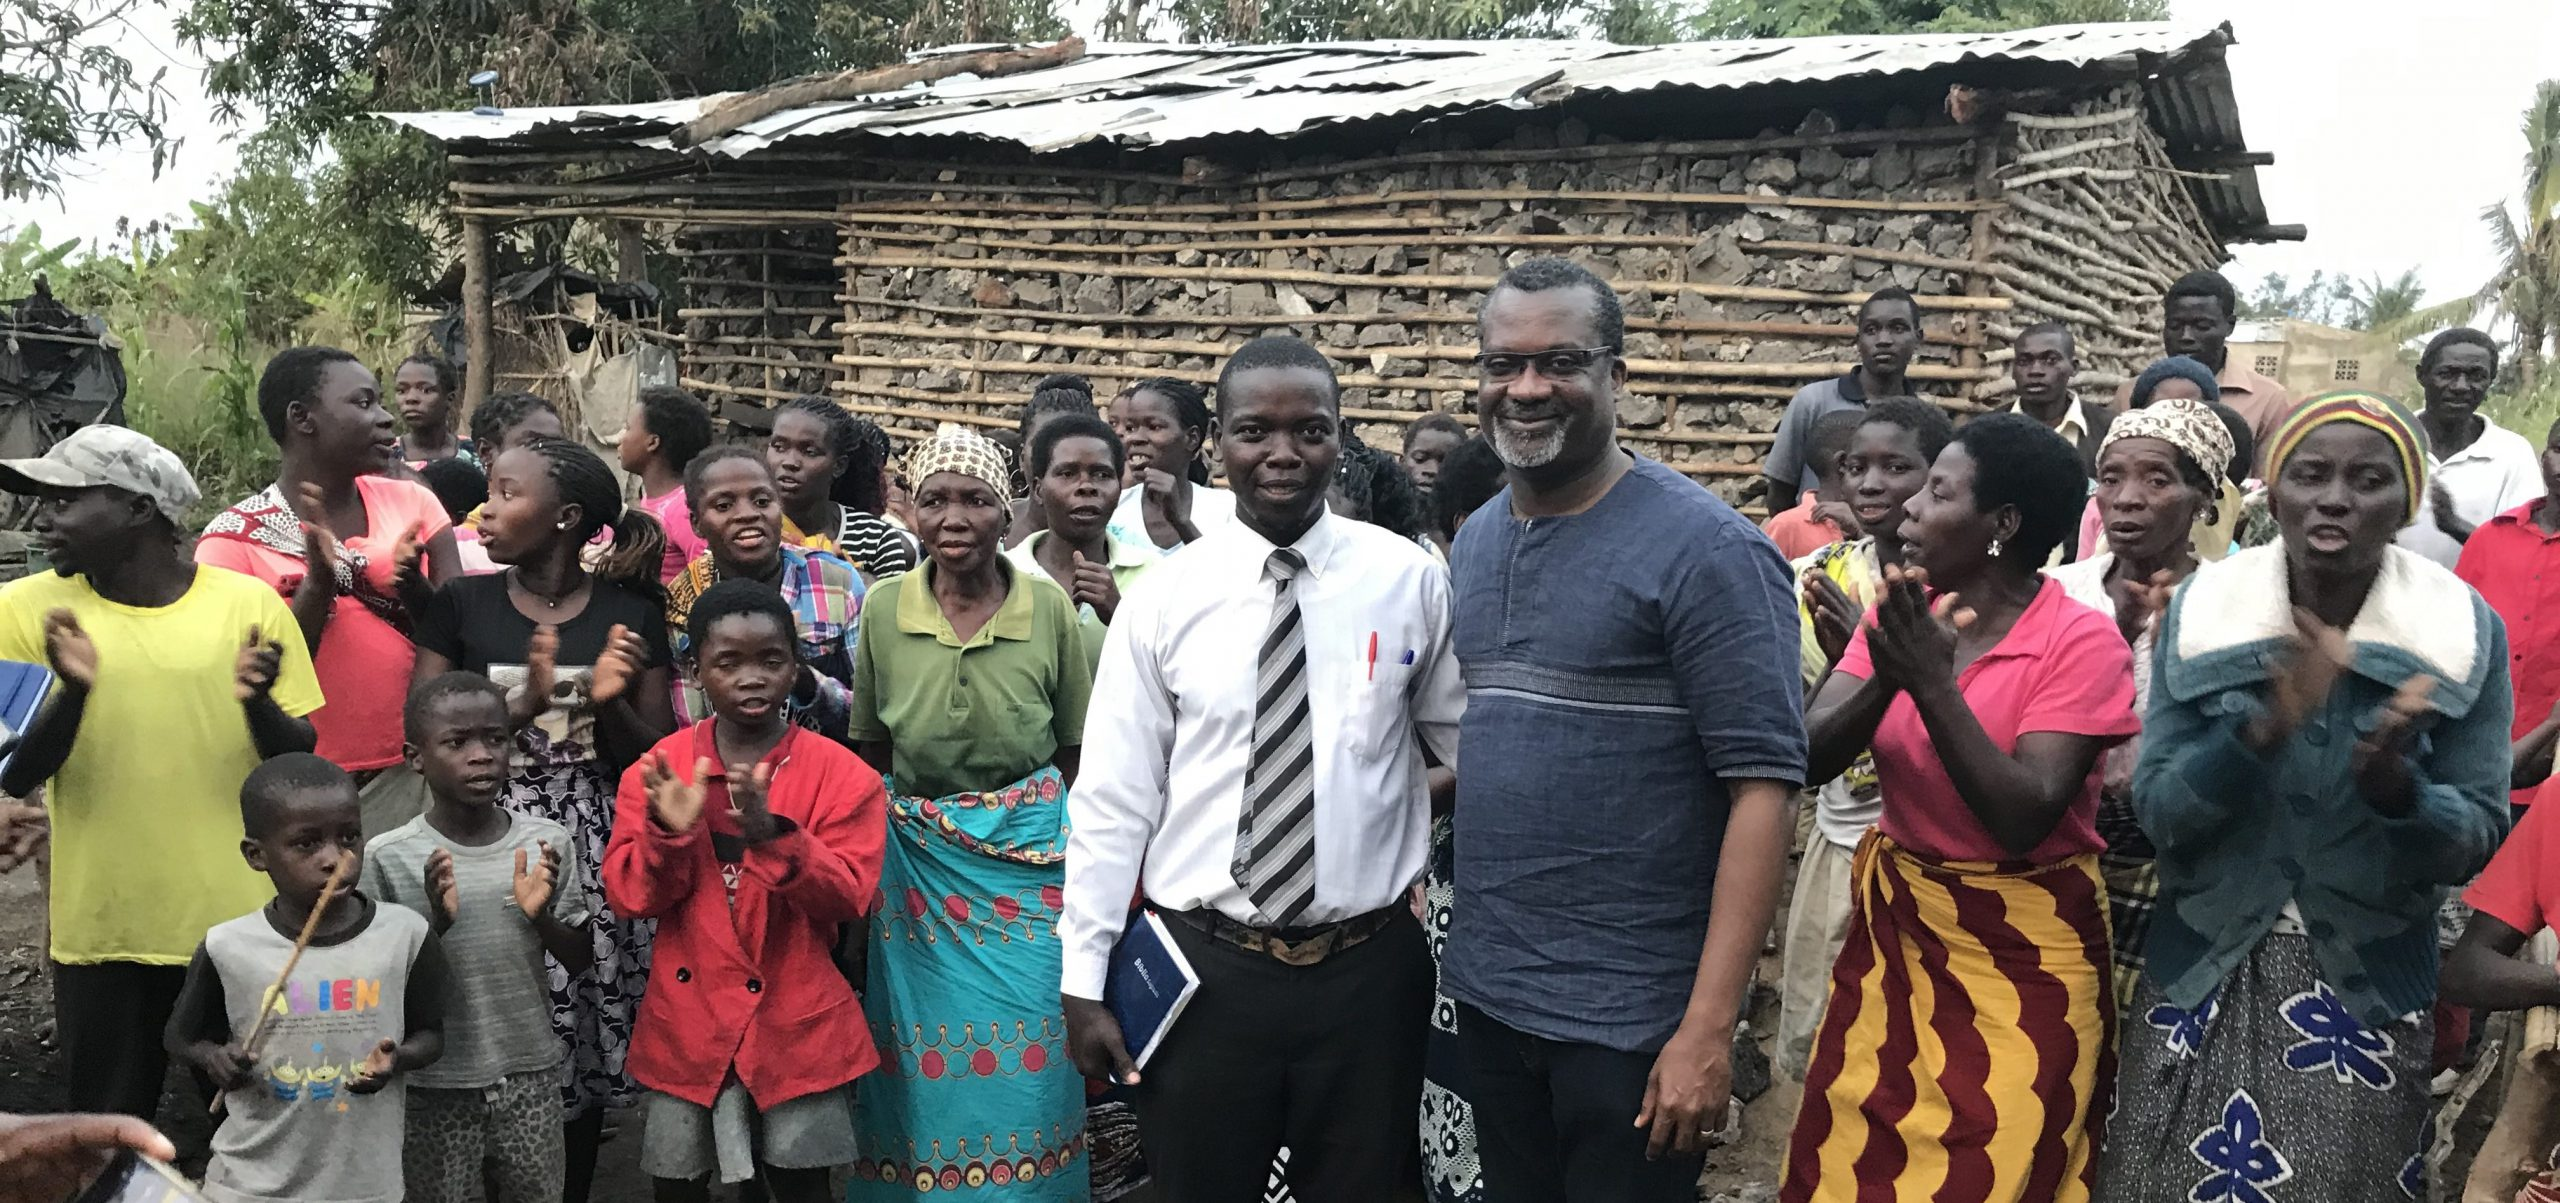 Dr. Gomis Visits Cyclone Affected Areas 02/08/19